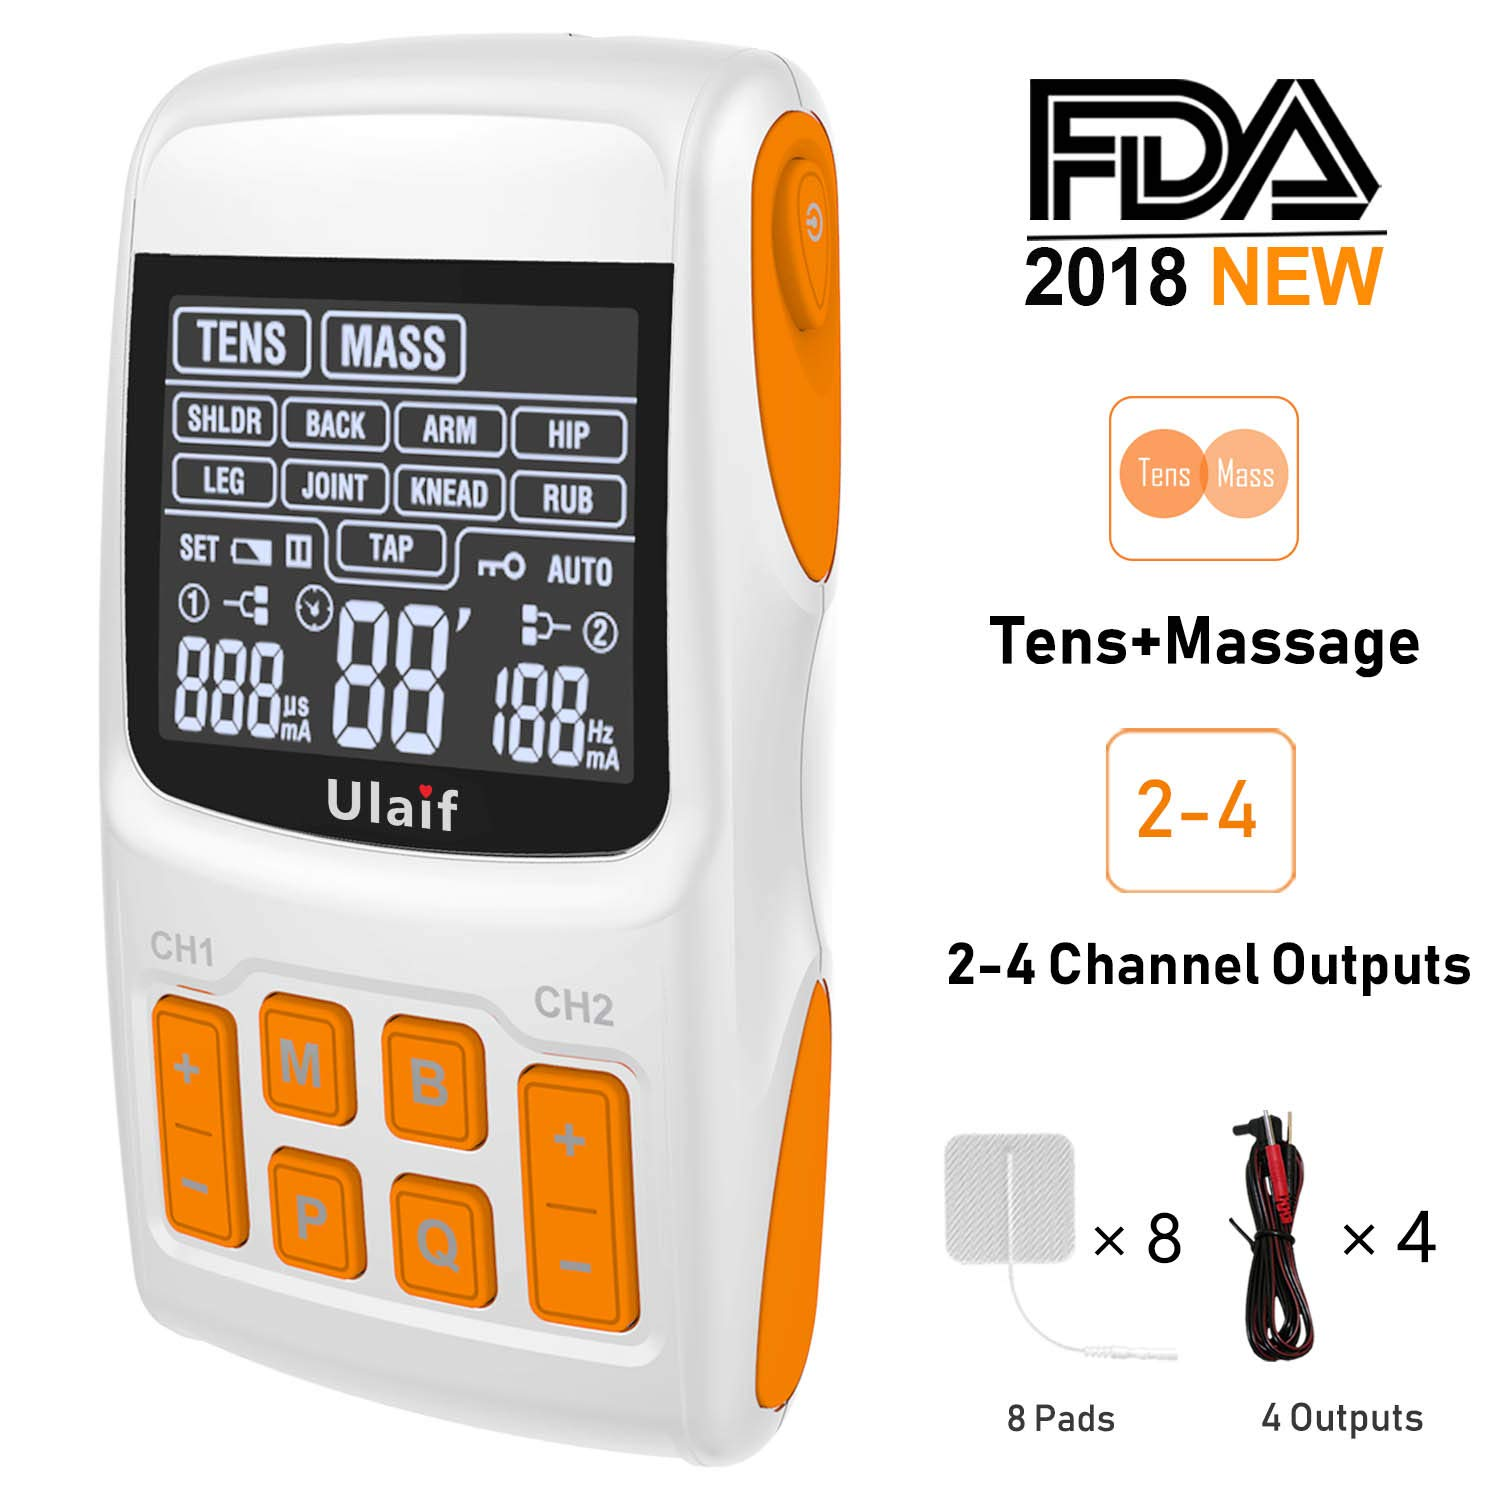 Tens Unit+Massager Combination,Ulaif 2018 New FDA Approved,Best Professional Portable 21 Modes Electronic Pulse Massager, Muscle Stimulator for Pain Relief,2-4 Channels Output,8 Long Life Pads